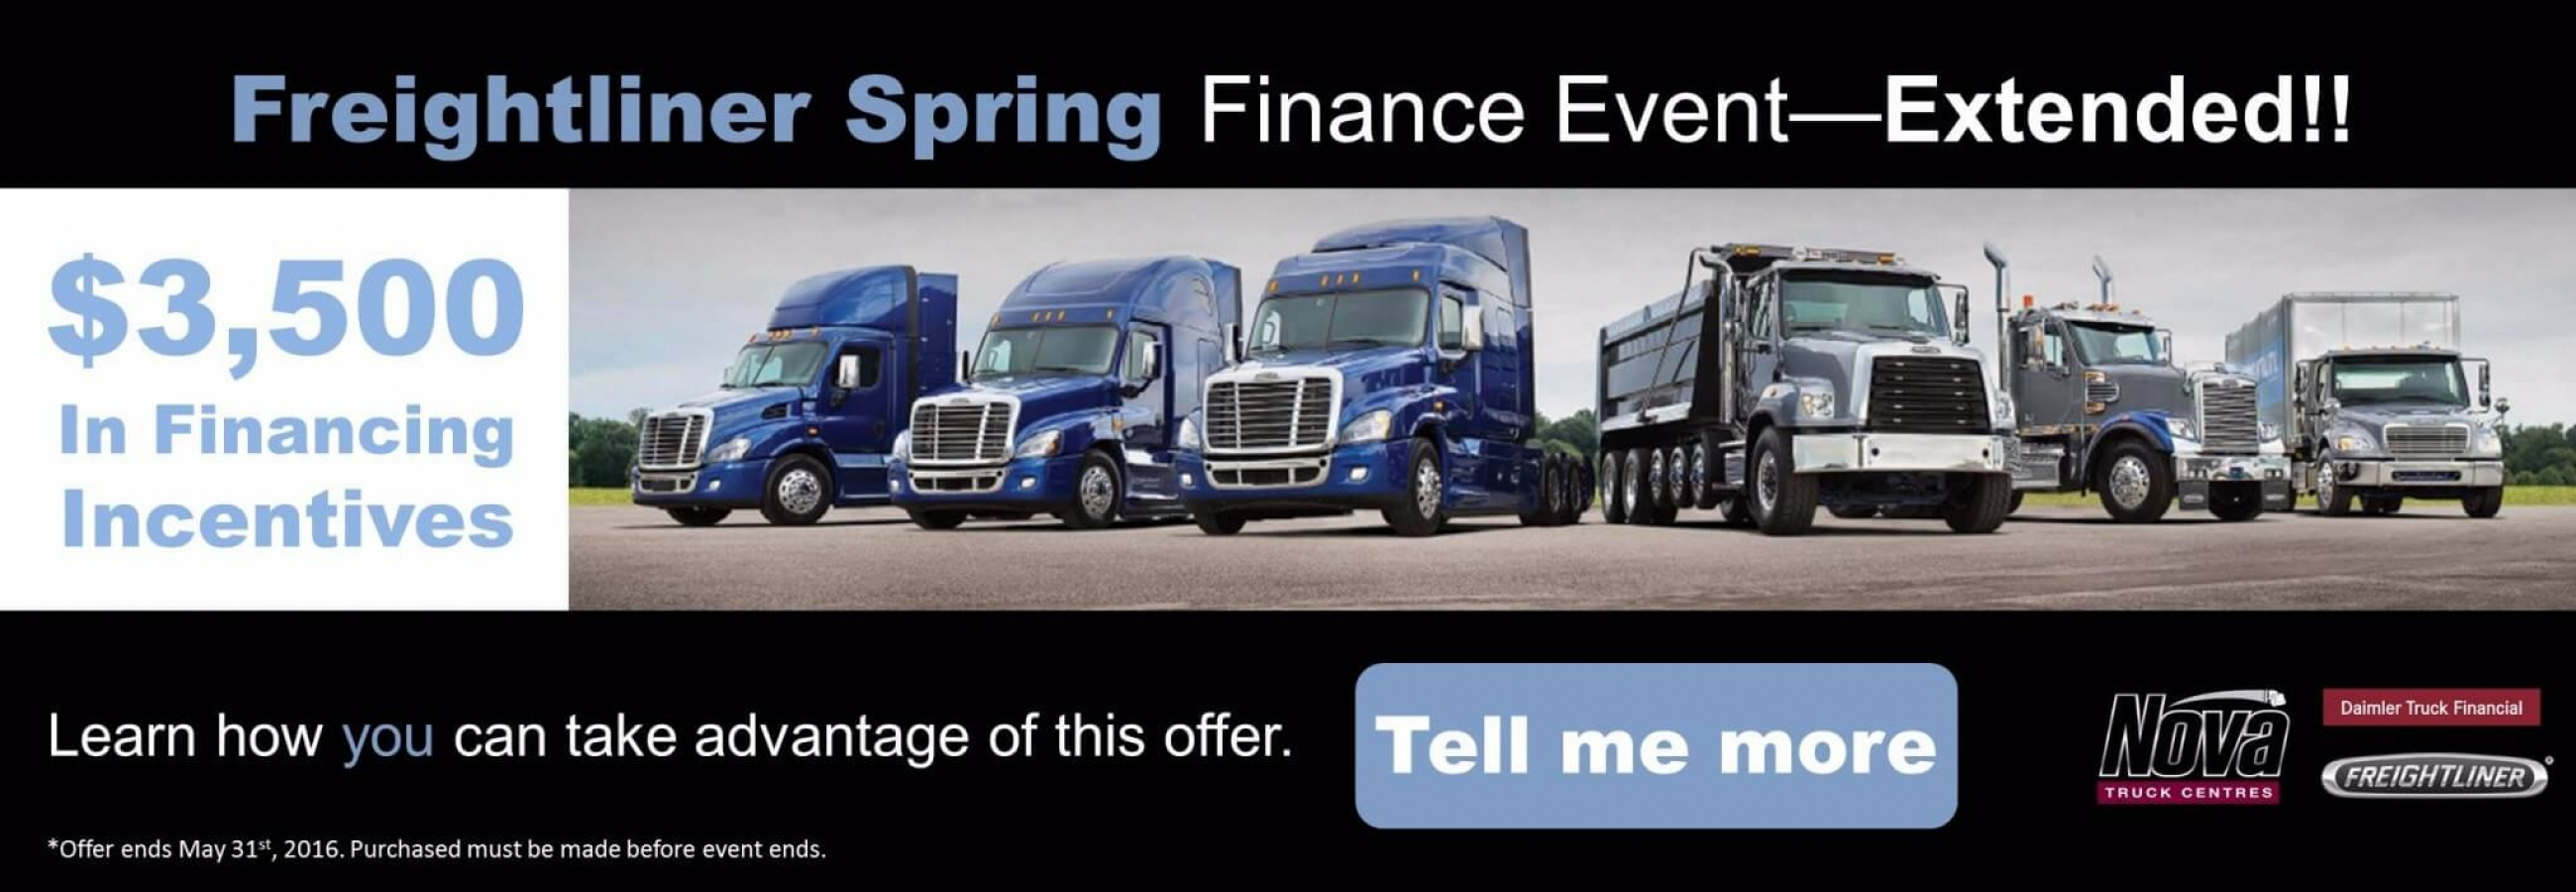 Spring Finance Event